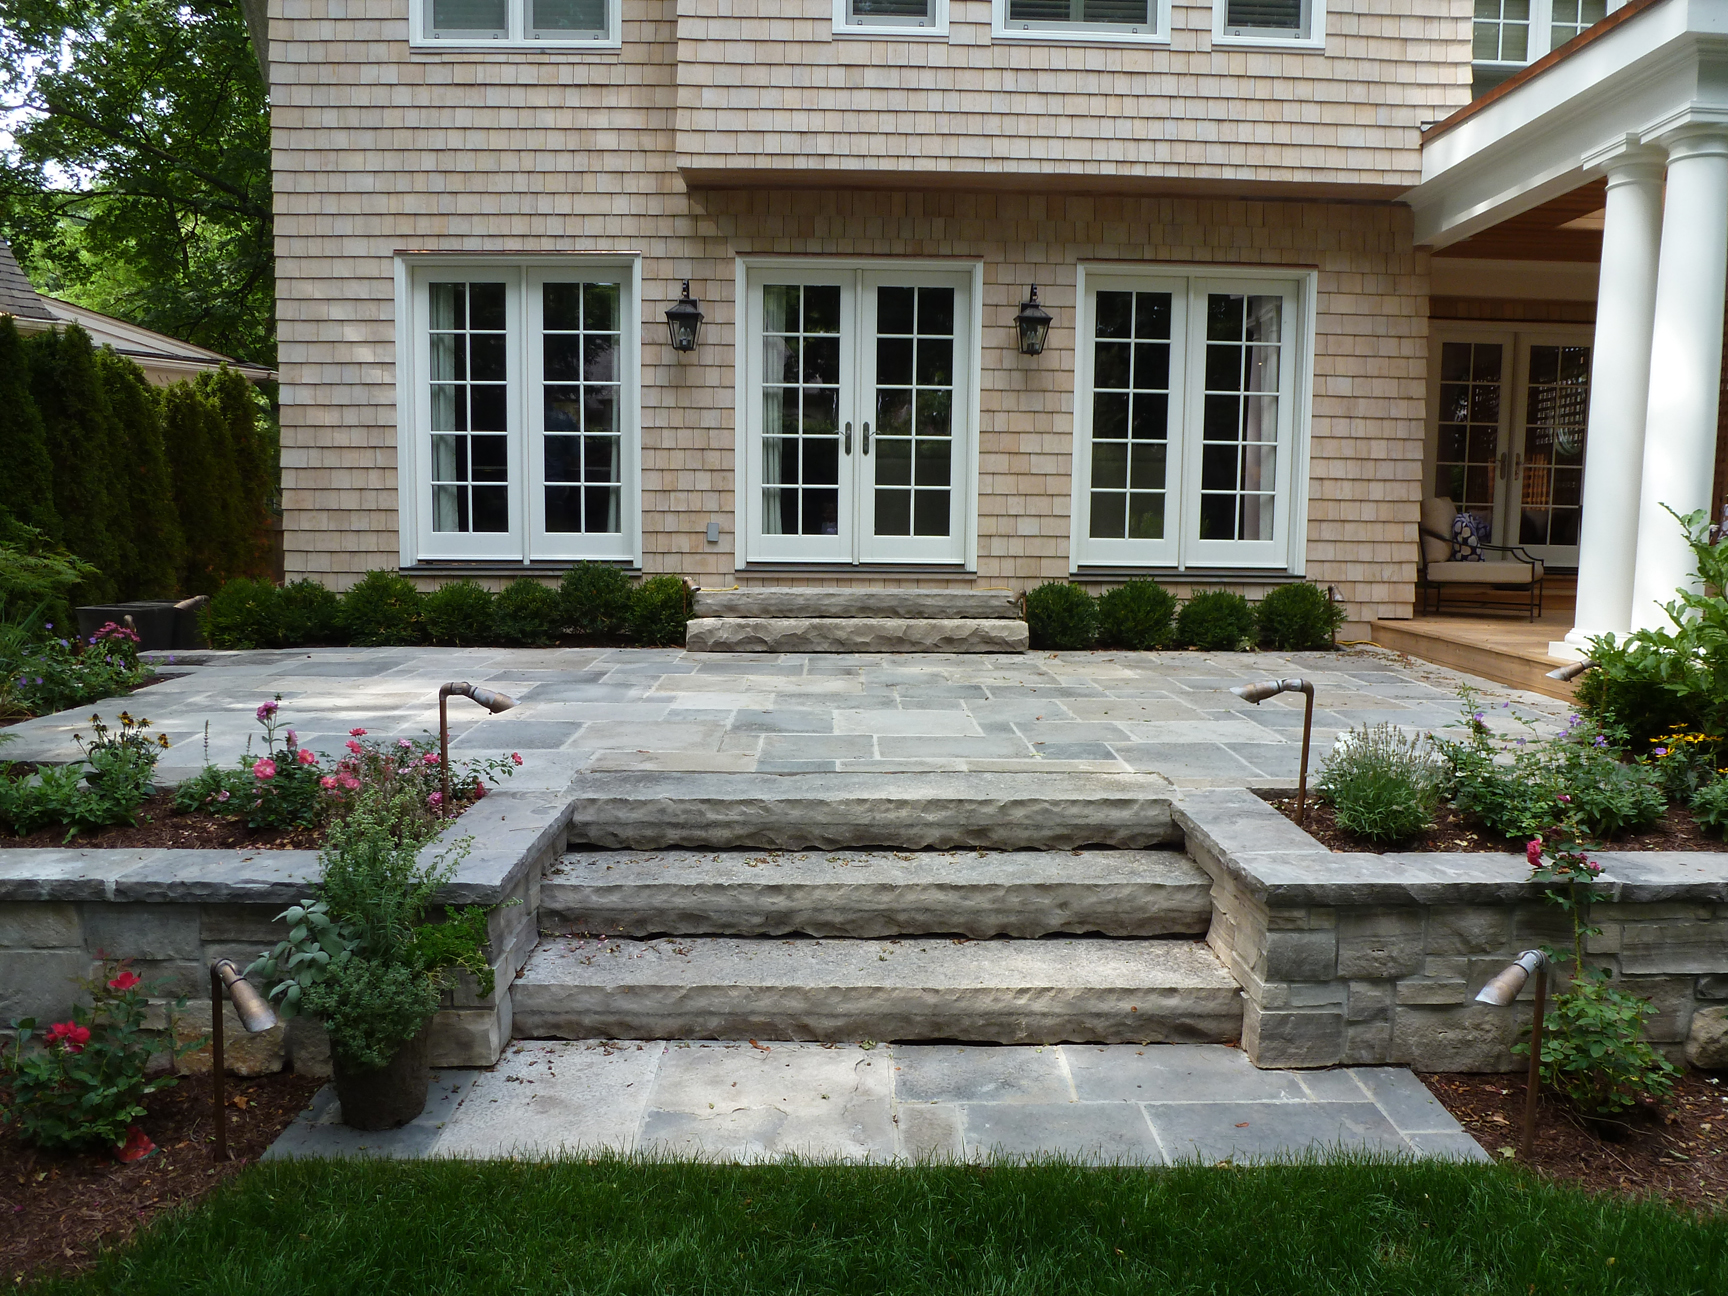 lawrence-park-addition-raised-stone-patio-4-copy